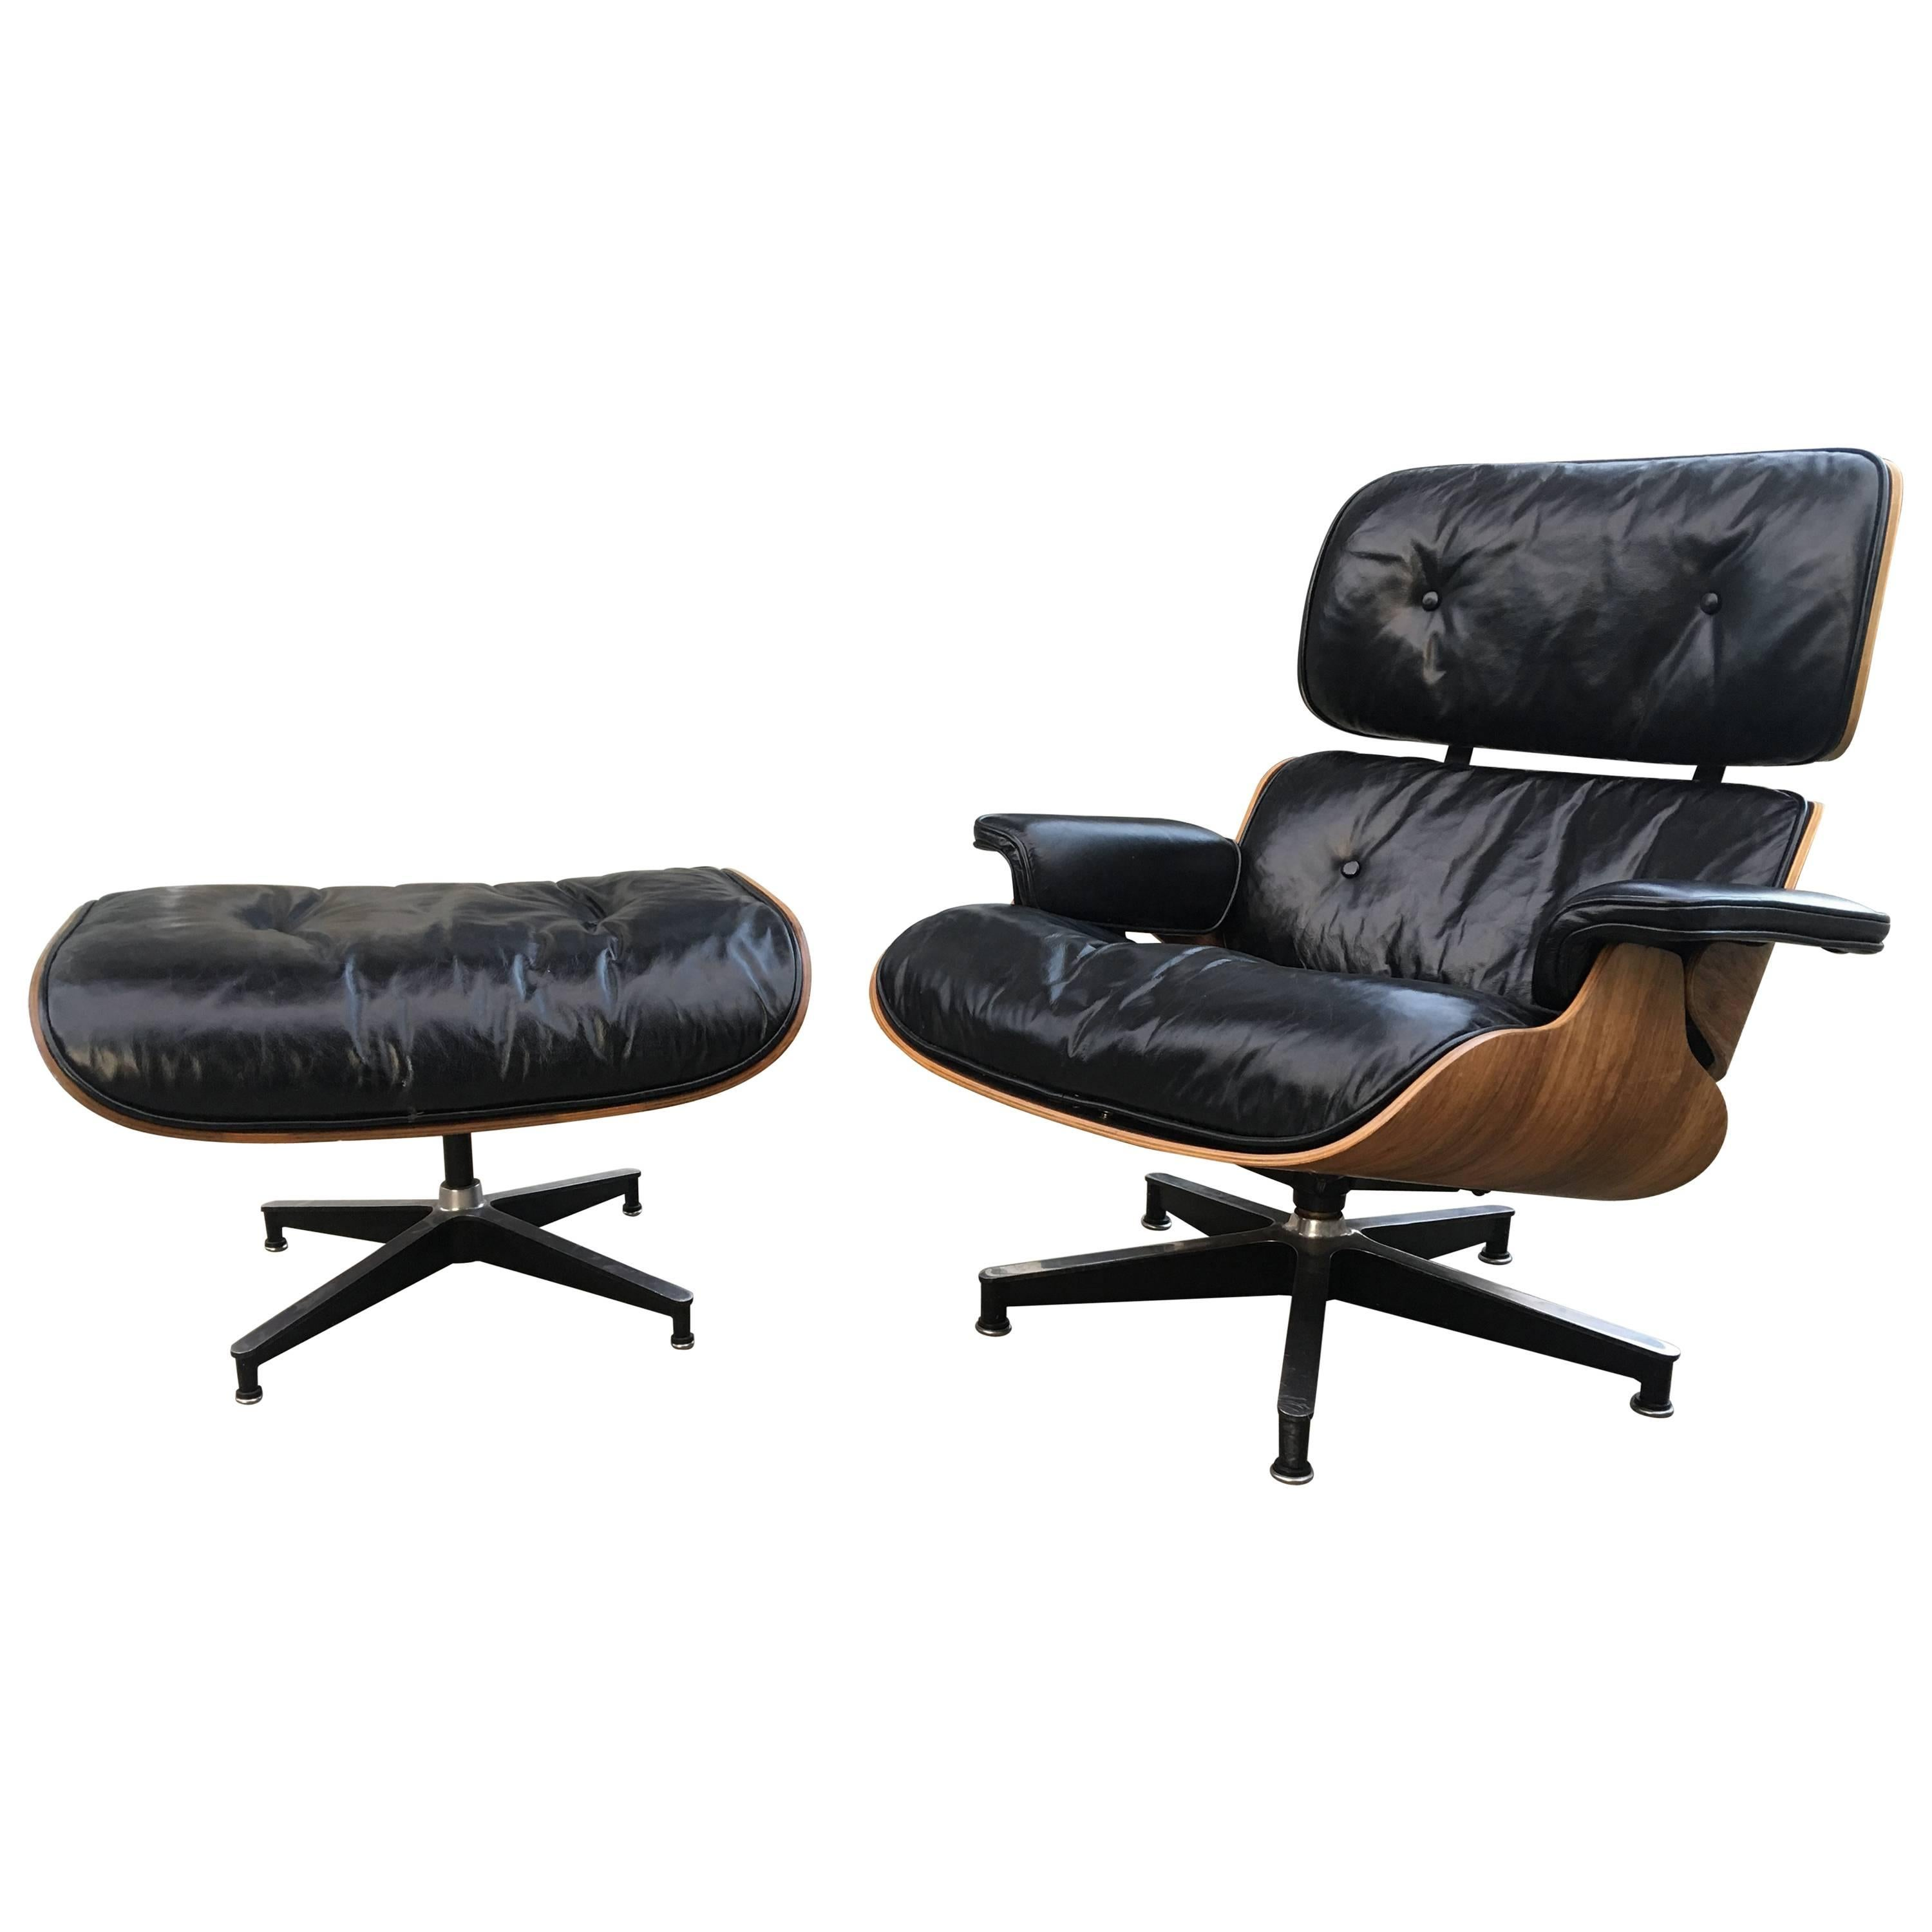 Early 1960s Herman Miller Eames Lounge Chair And Ottoman With Down Cushions